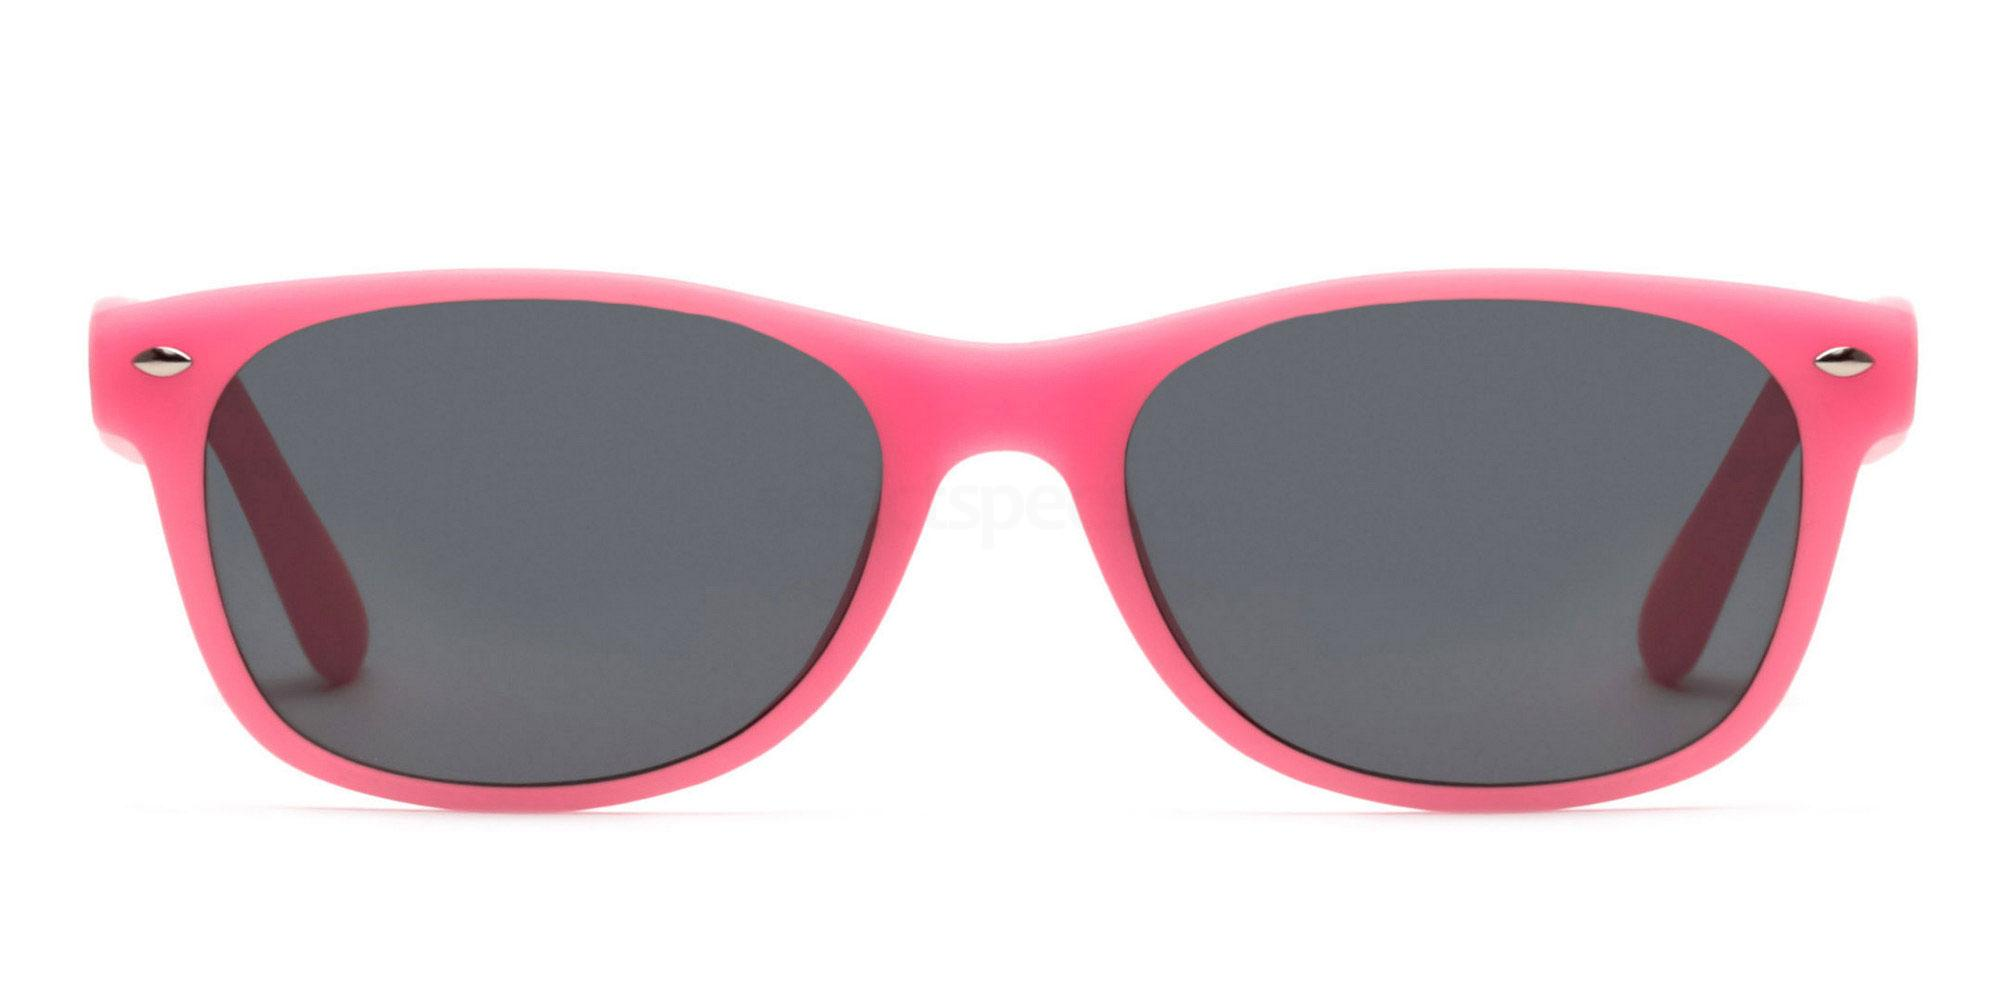 Pink S8122 - Pink (Sunglasses) Sunglasses, Savannah